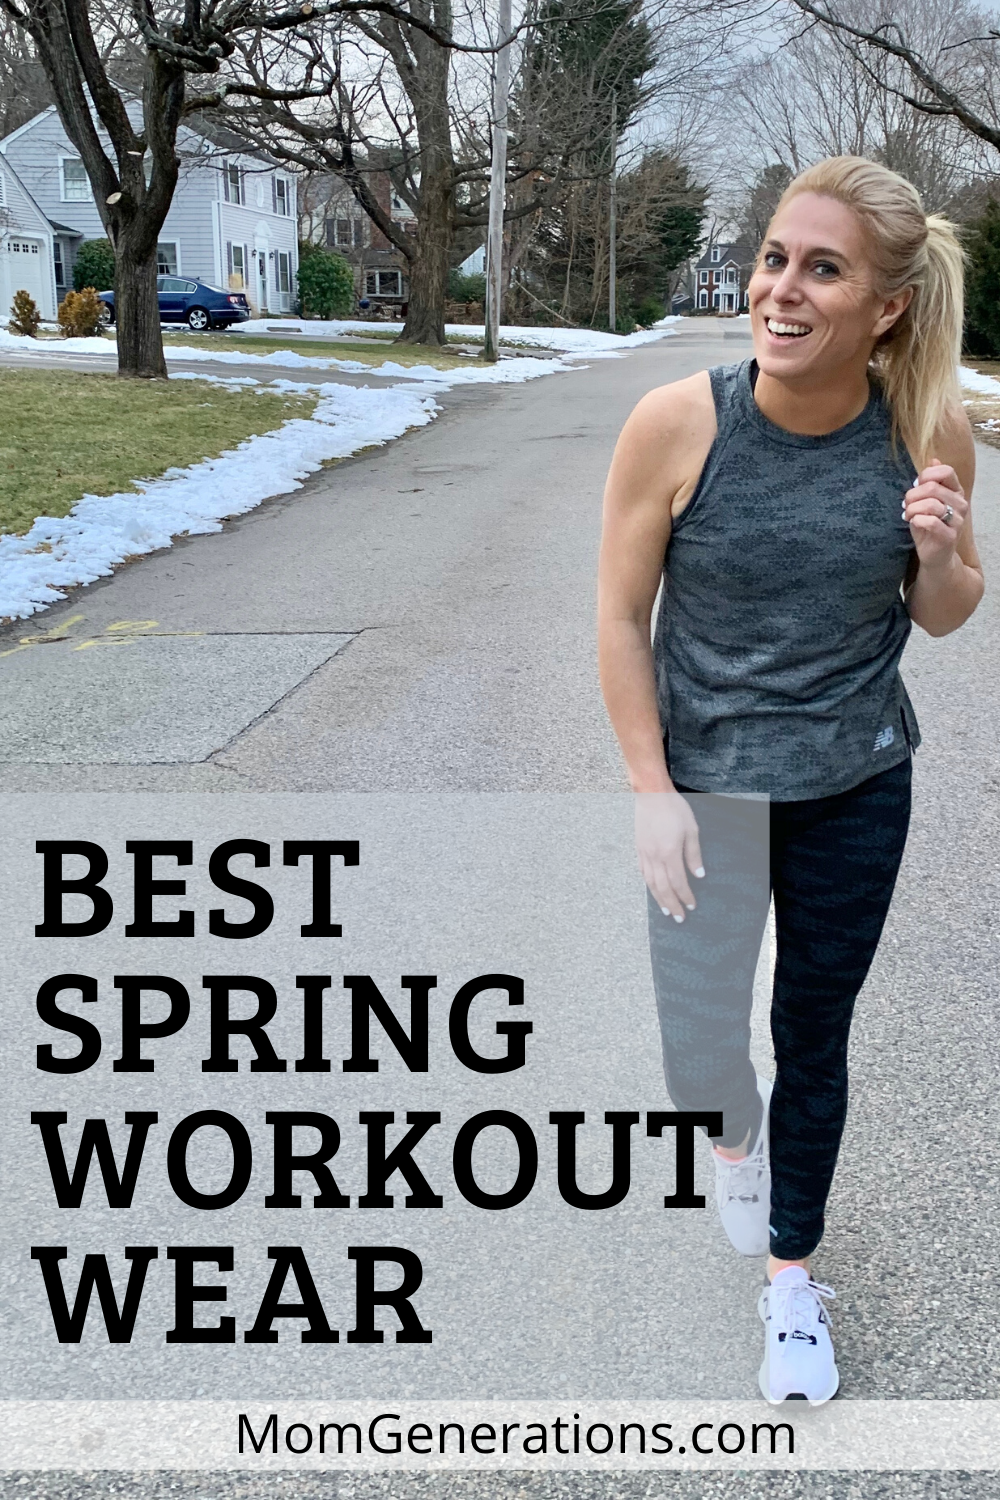 Spring workout routines need spring workout gear. New Balance has some incredible options when it co...